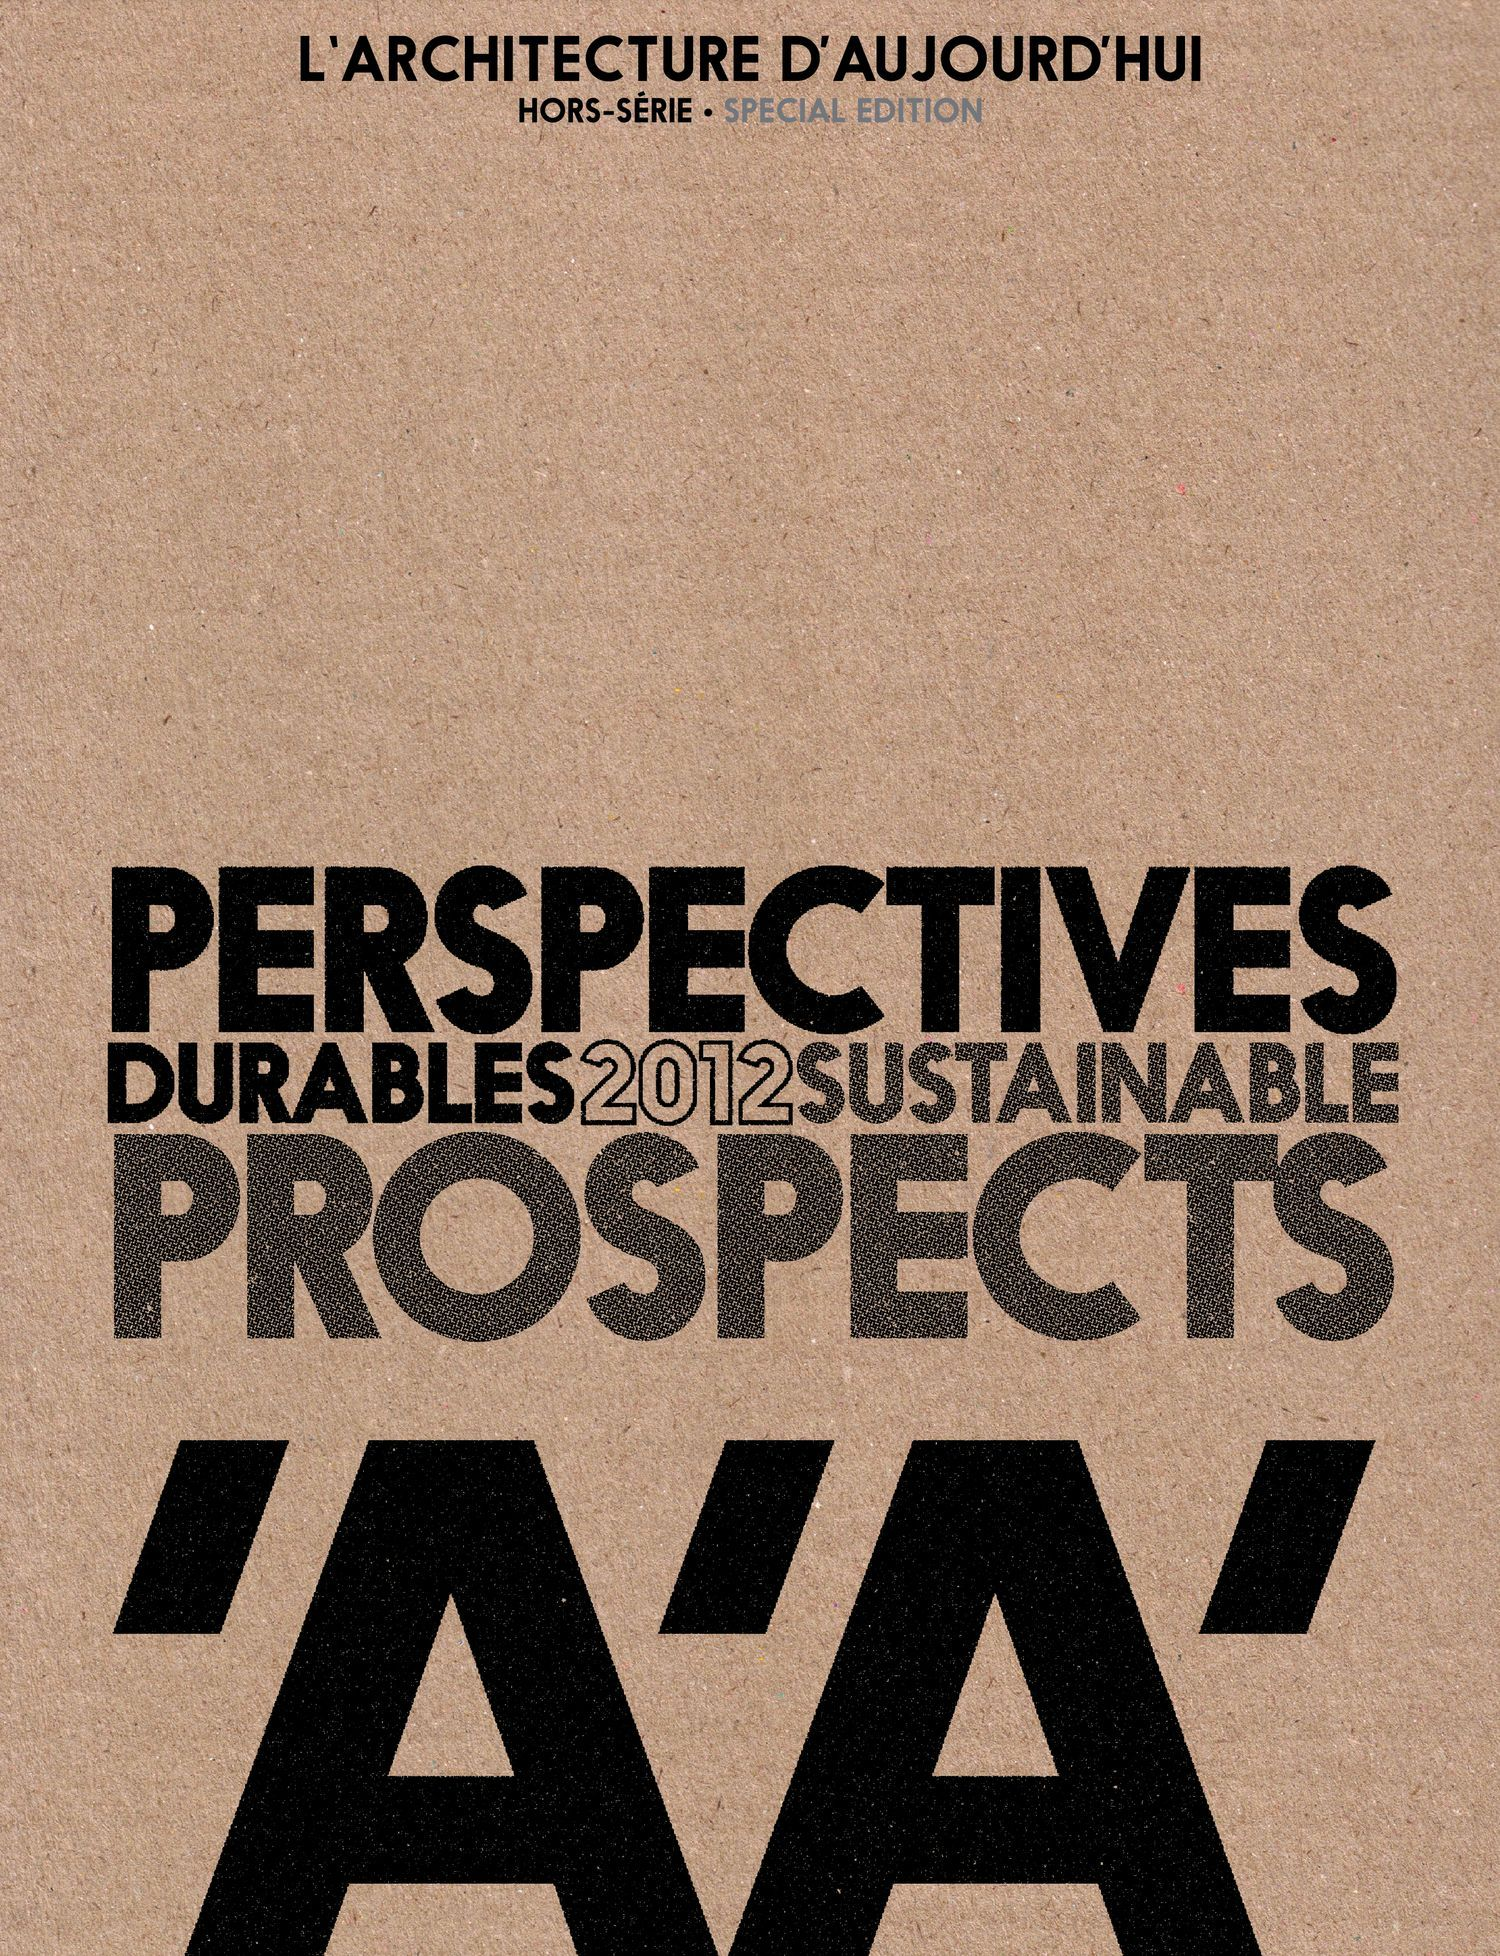 PERSPECTIVES DURABLES 2012